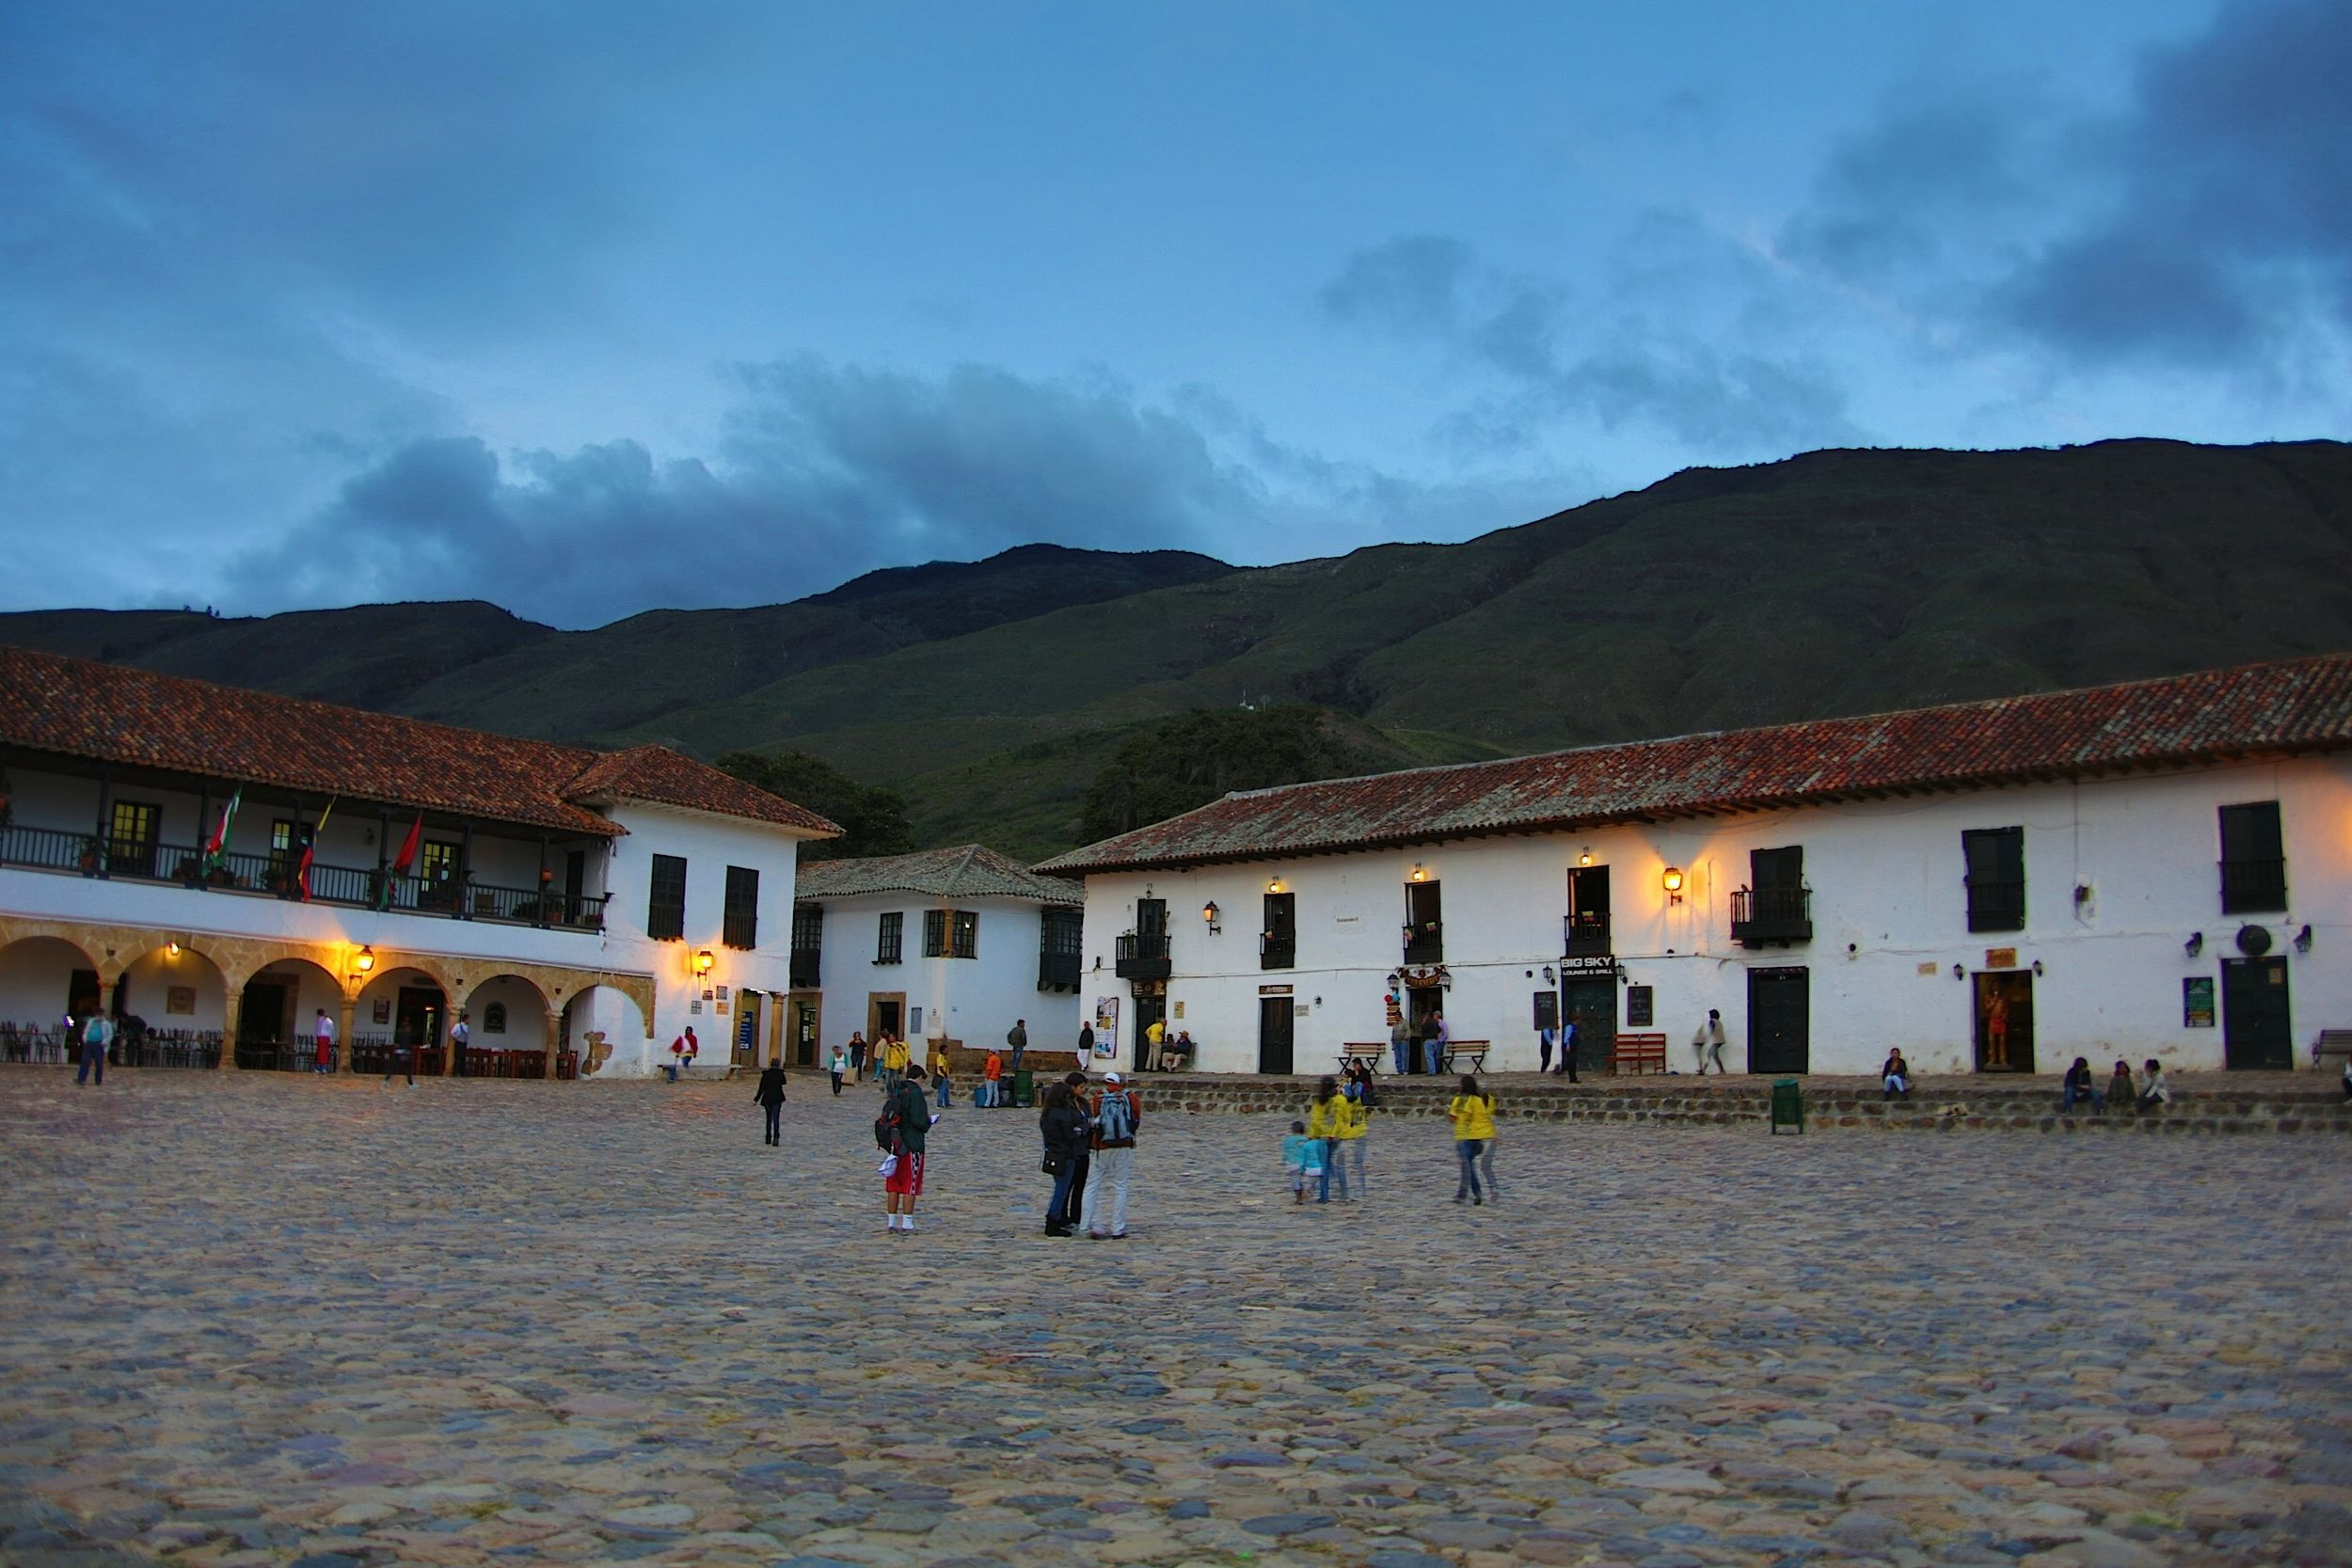 View of Villa de Leyva